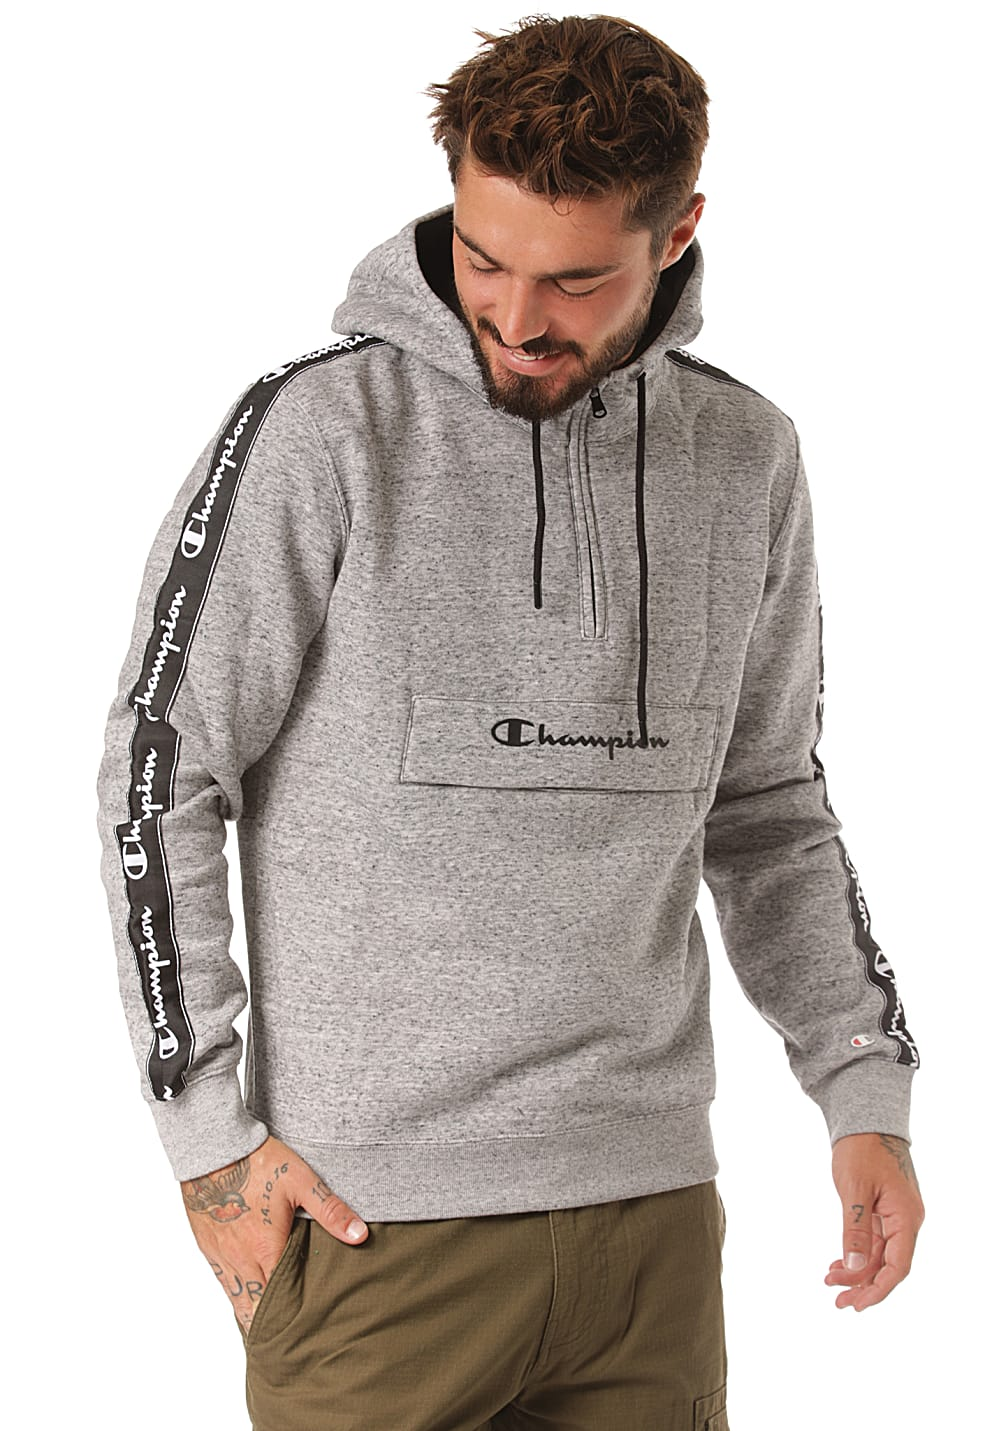 united kingdom classic shoes the best attitude Champion ATA American Tape - Hooded Sweatshirt for Men - Grey